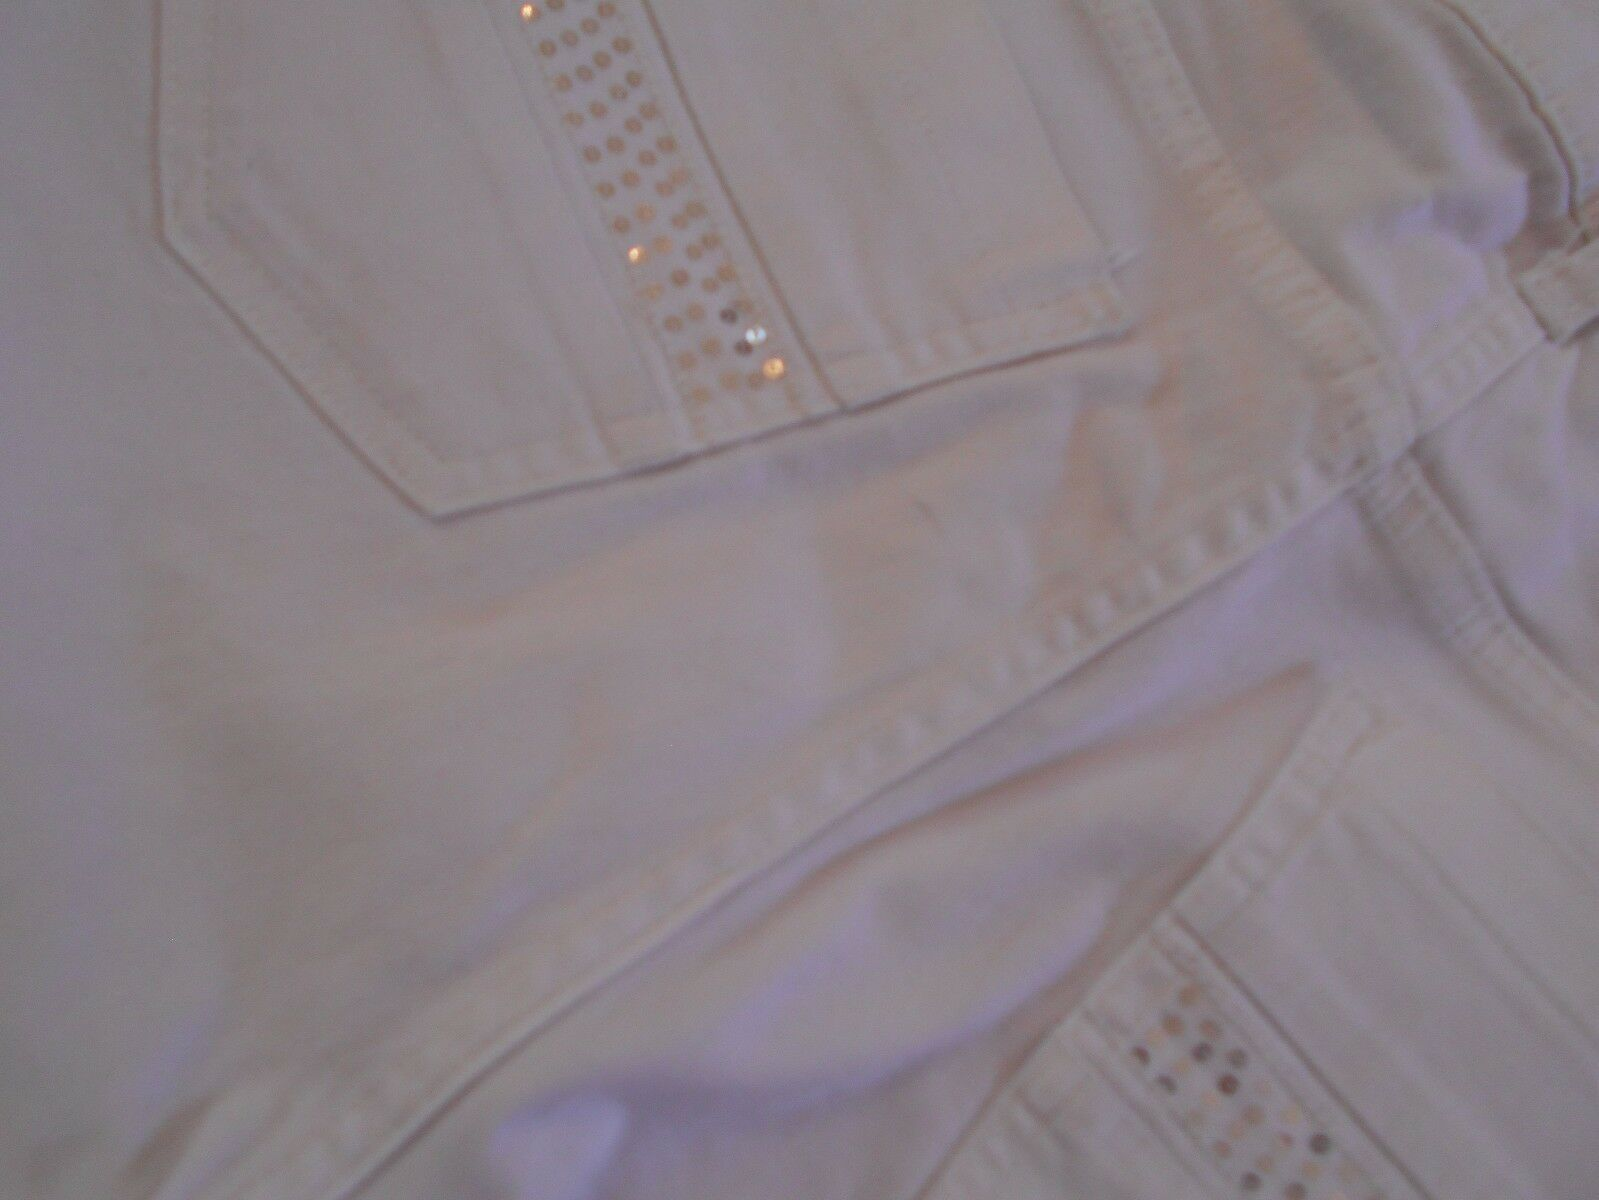 """Riders by Lee Women's Stretch Jean Bermuda SHORTS 14 WAIST 37"""" WHITE SEQUIN   image 8"""